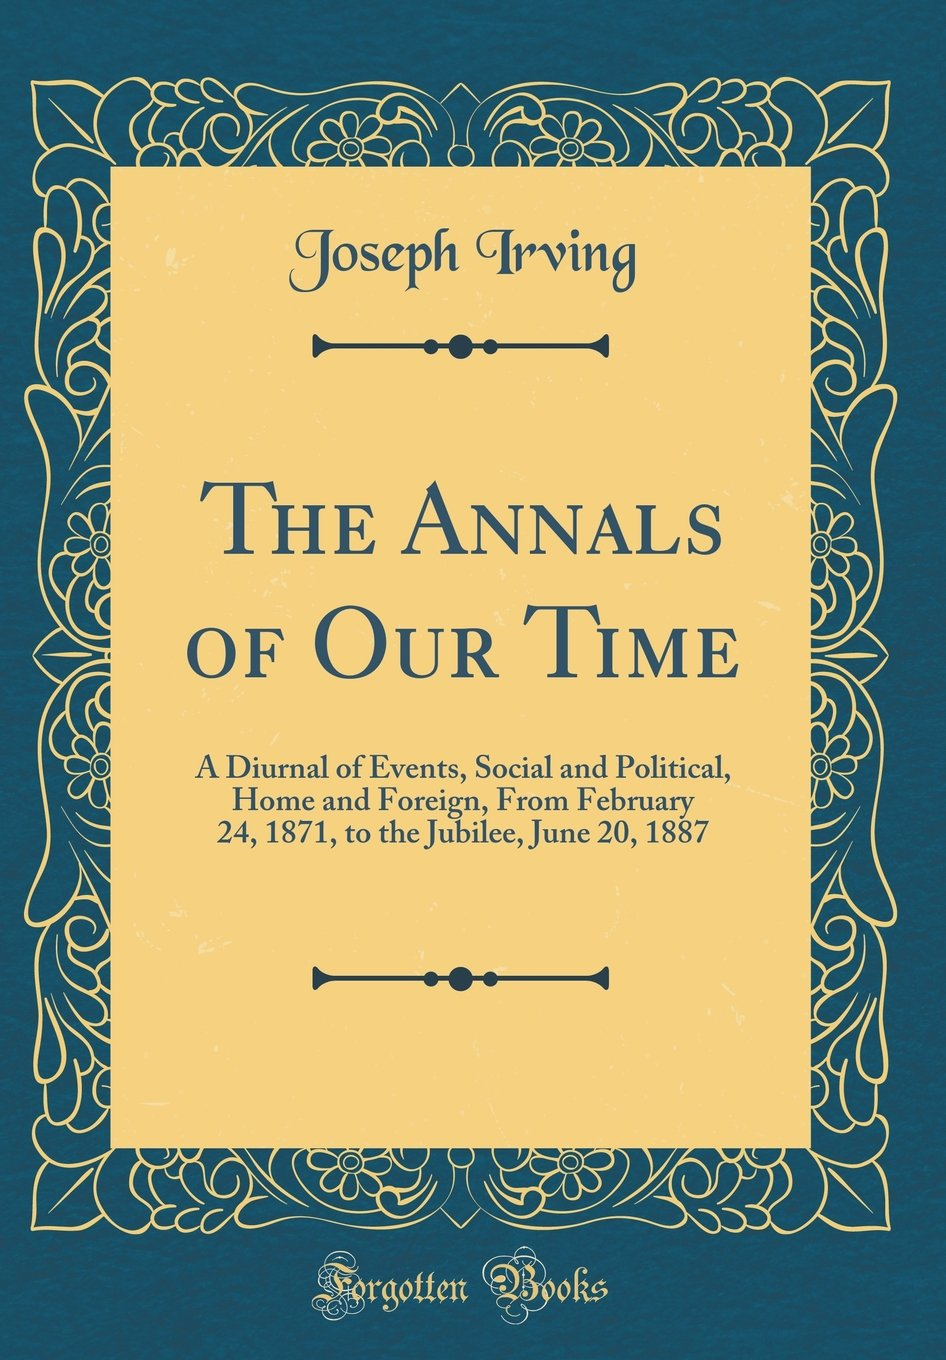 The Annals of Our Time: A Diurnal of Events, Social and Political, Home and Foreign, From February 24, 1871, to the Jubilee, June 20, 1887 (Classic Reprint) pdf